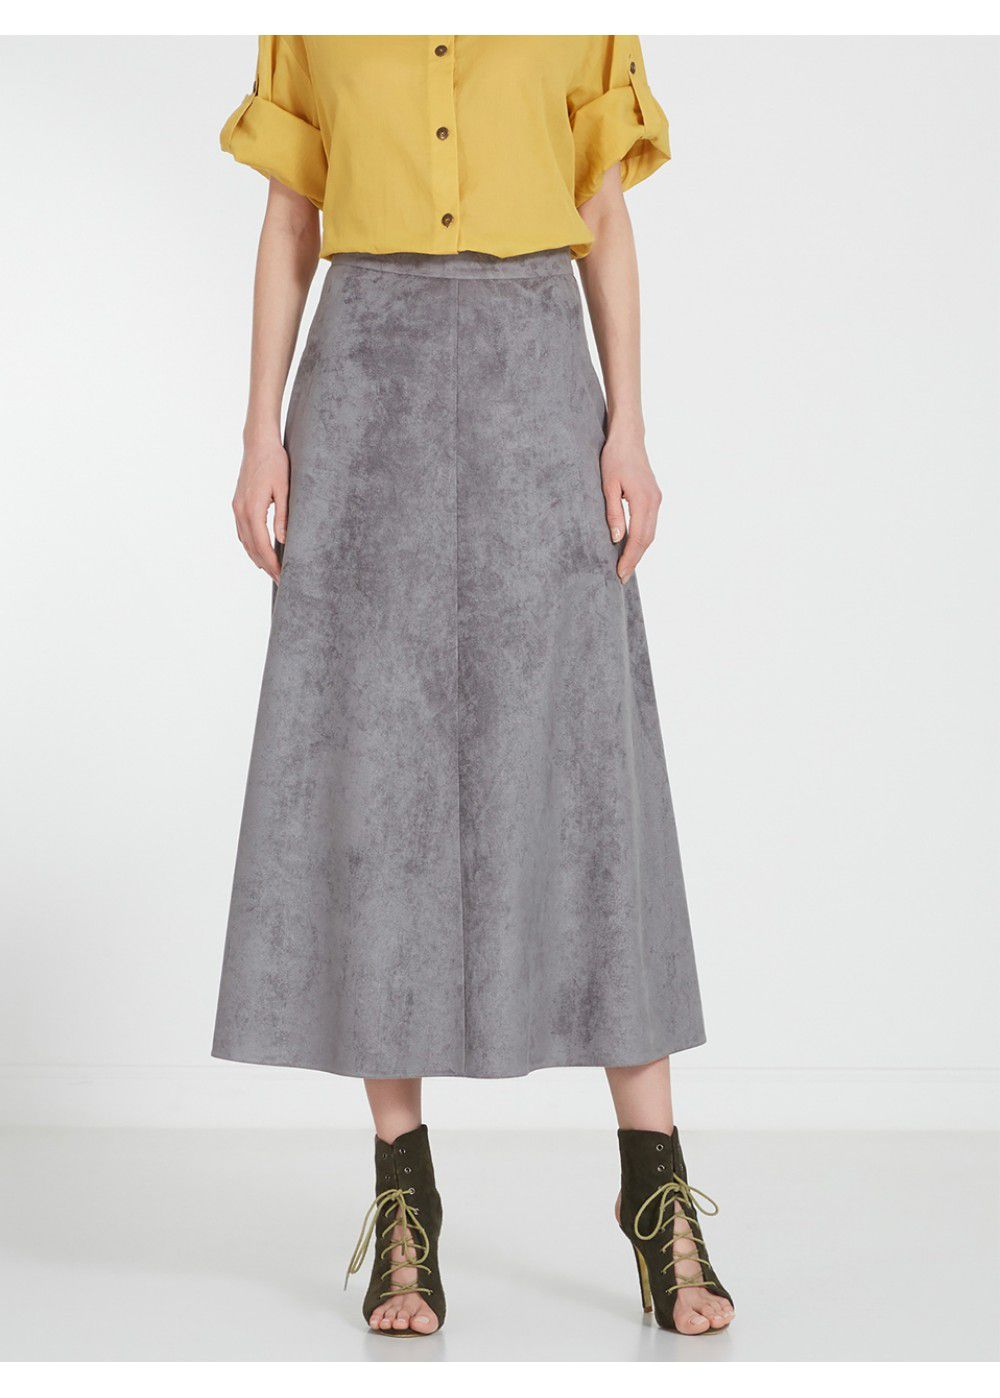 A La Russe Suede Skirt in Grey